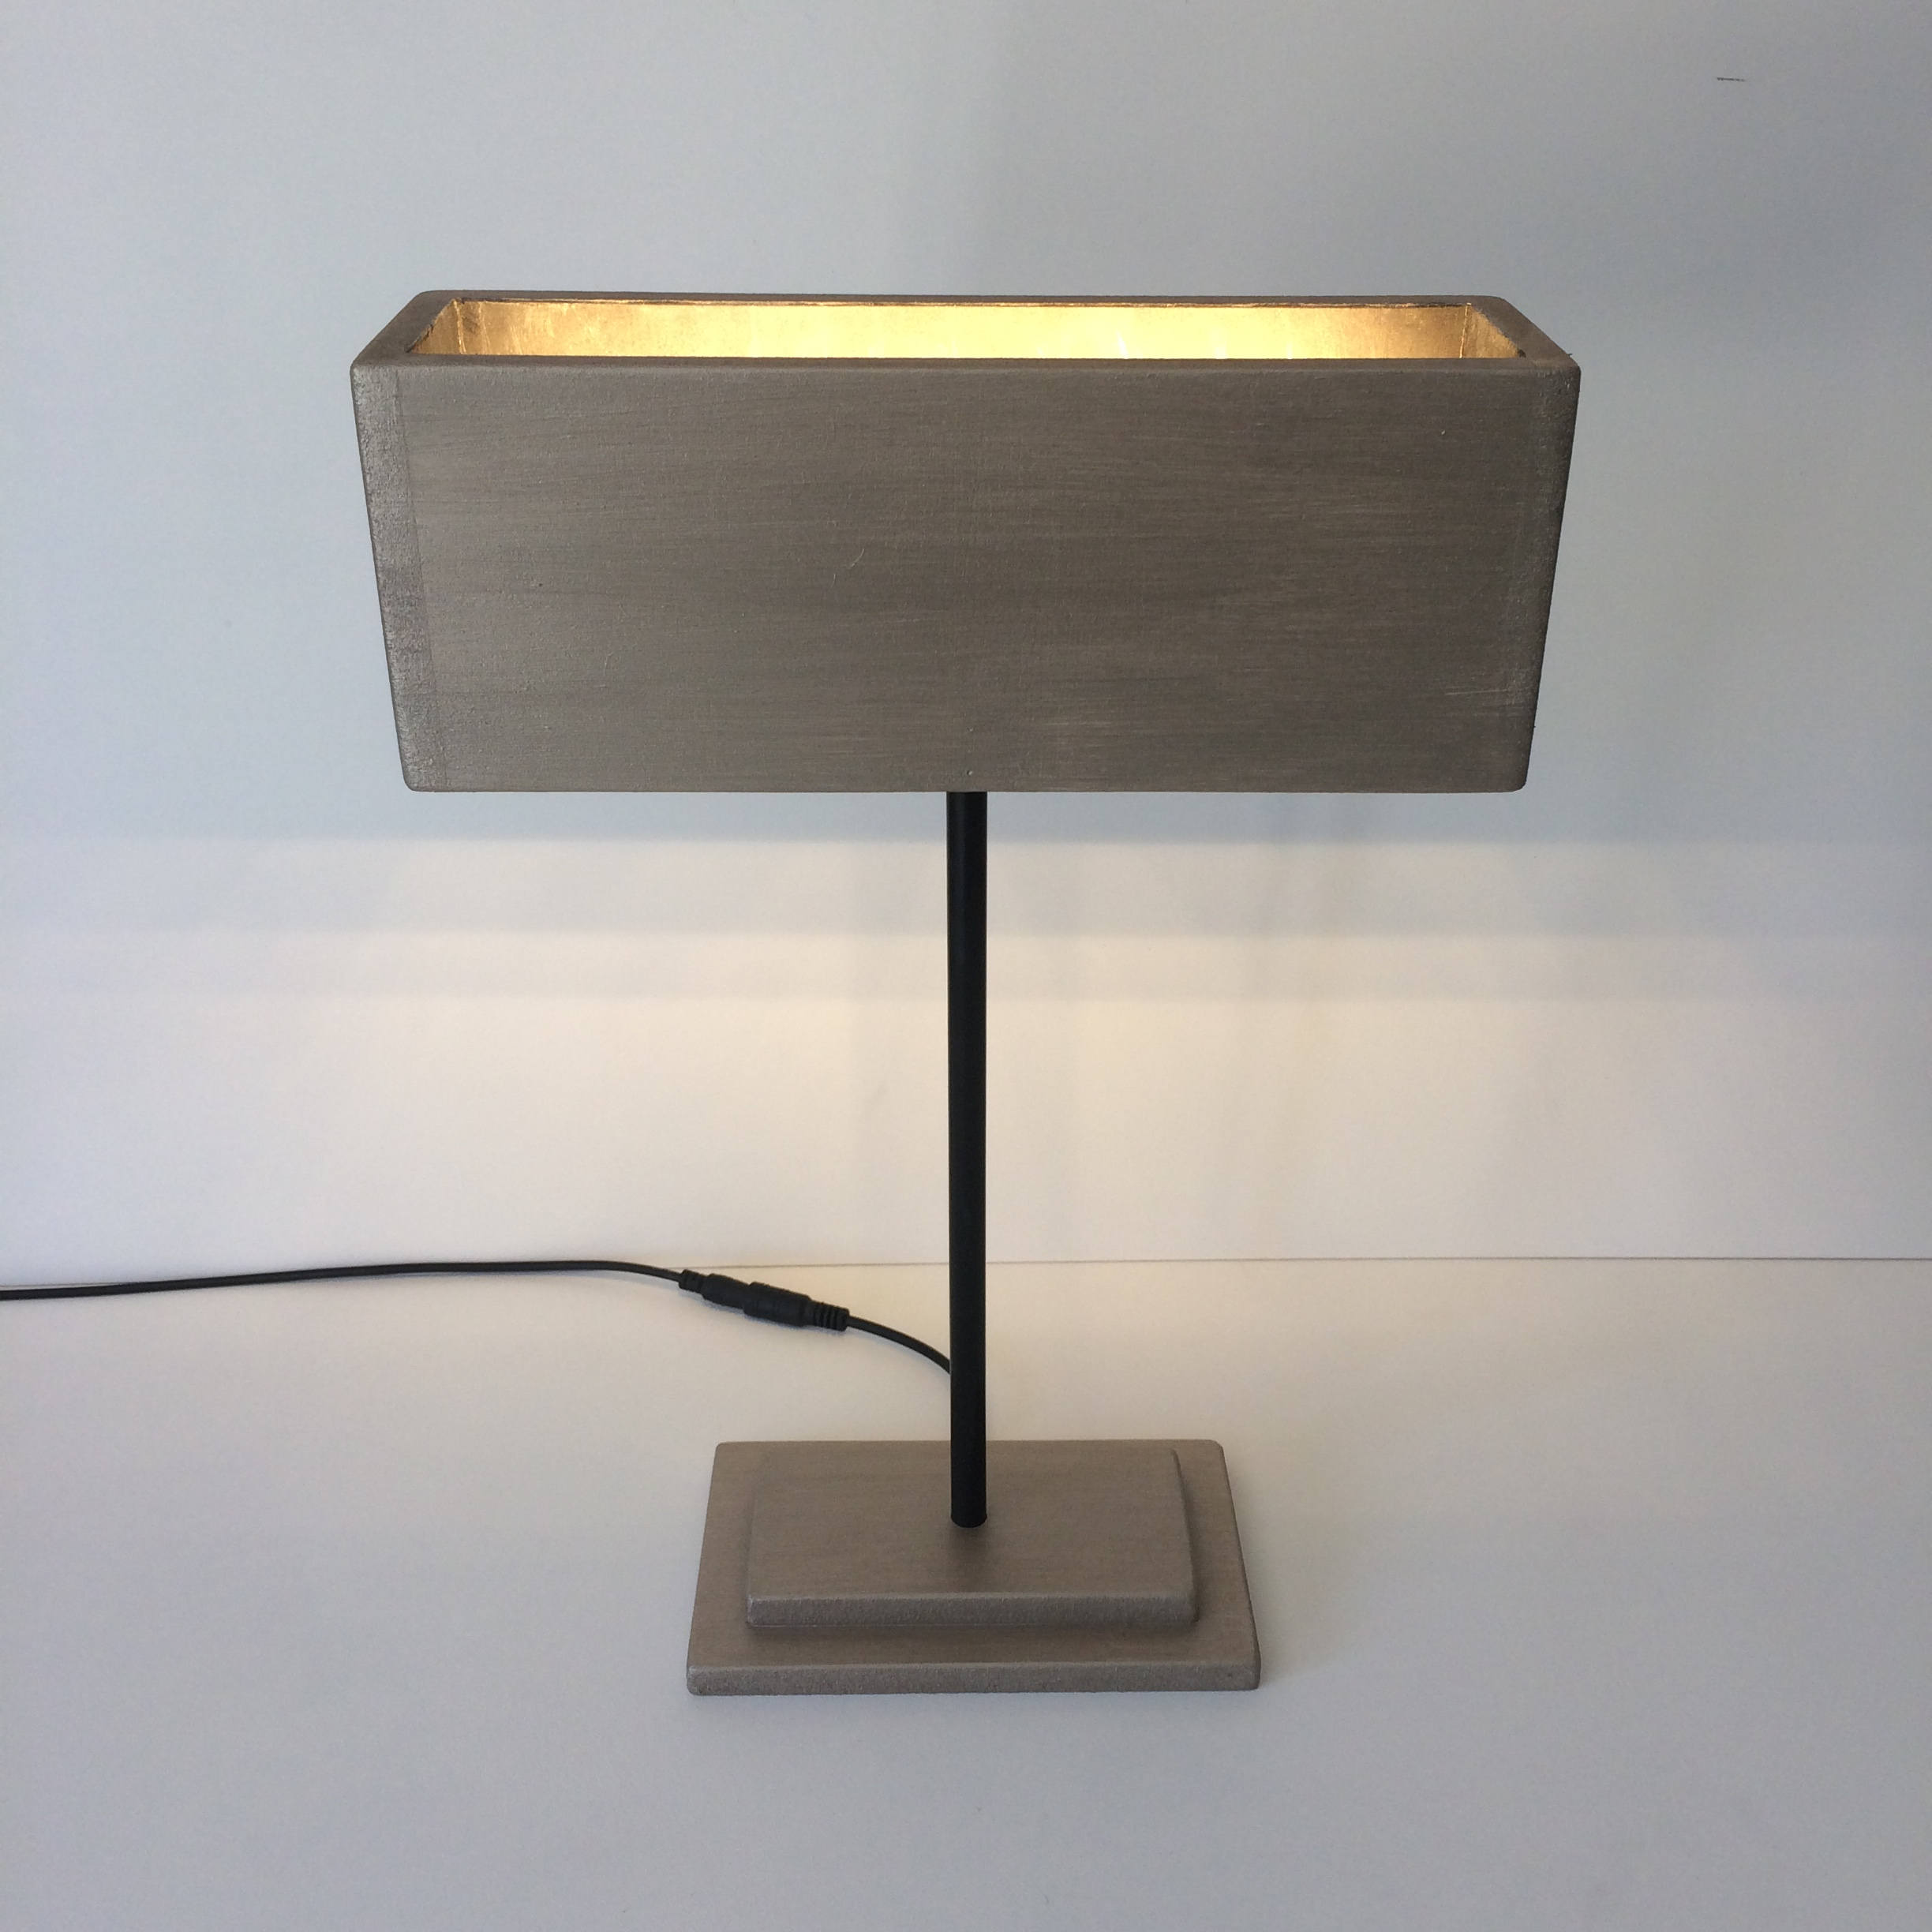 Accent Lighting Of Contemporary Table Lamps For Living: Modern Table Lamp Led Contemporary Light Desk Lamp Stylish